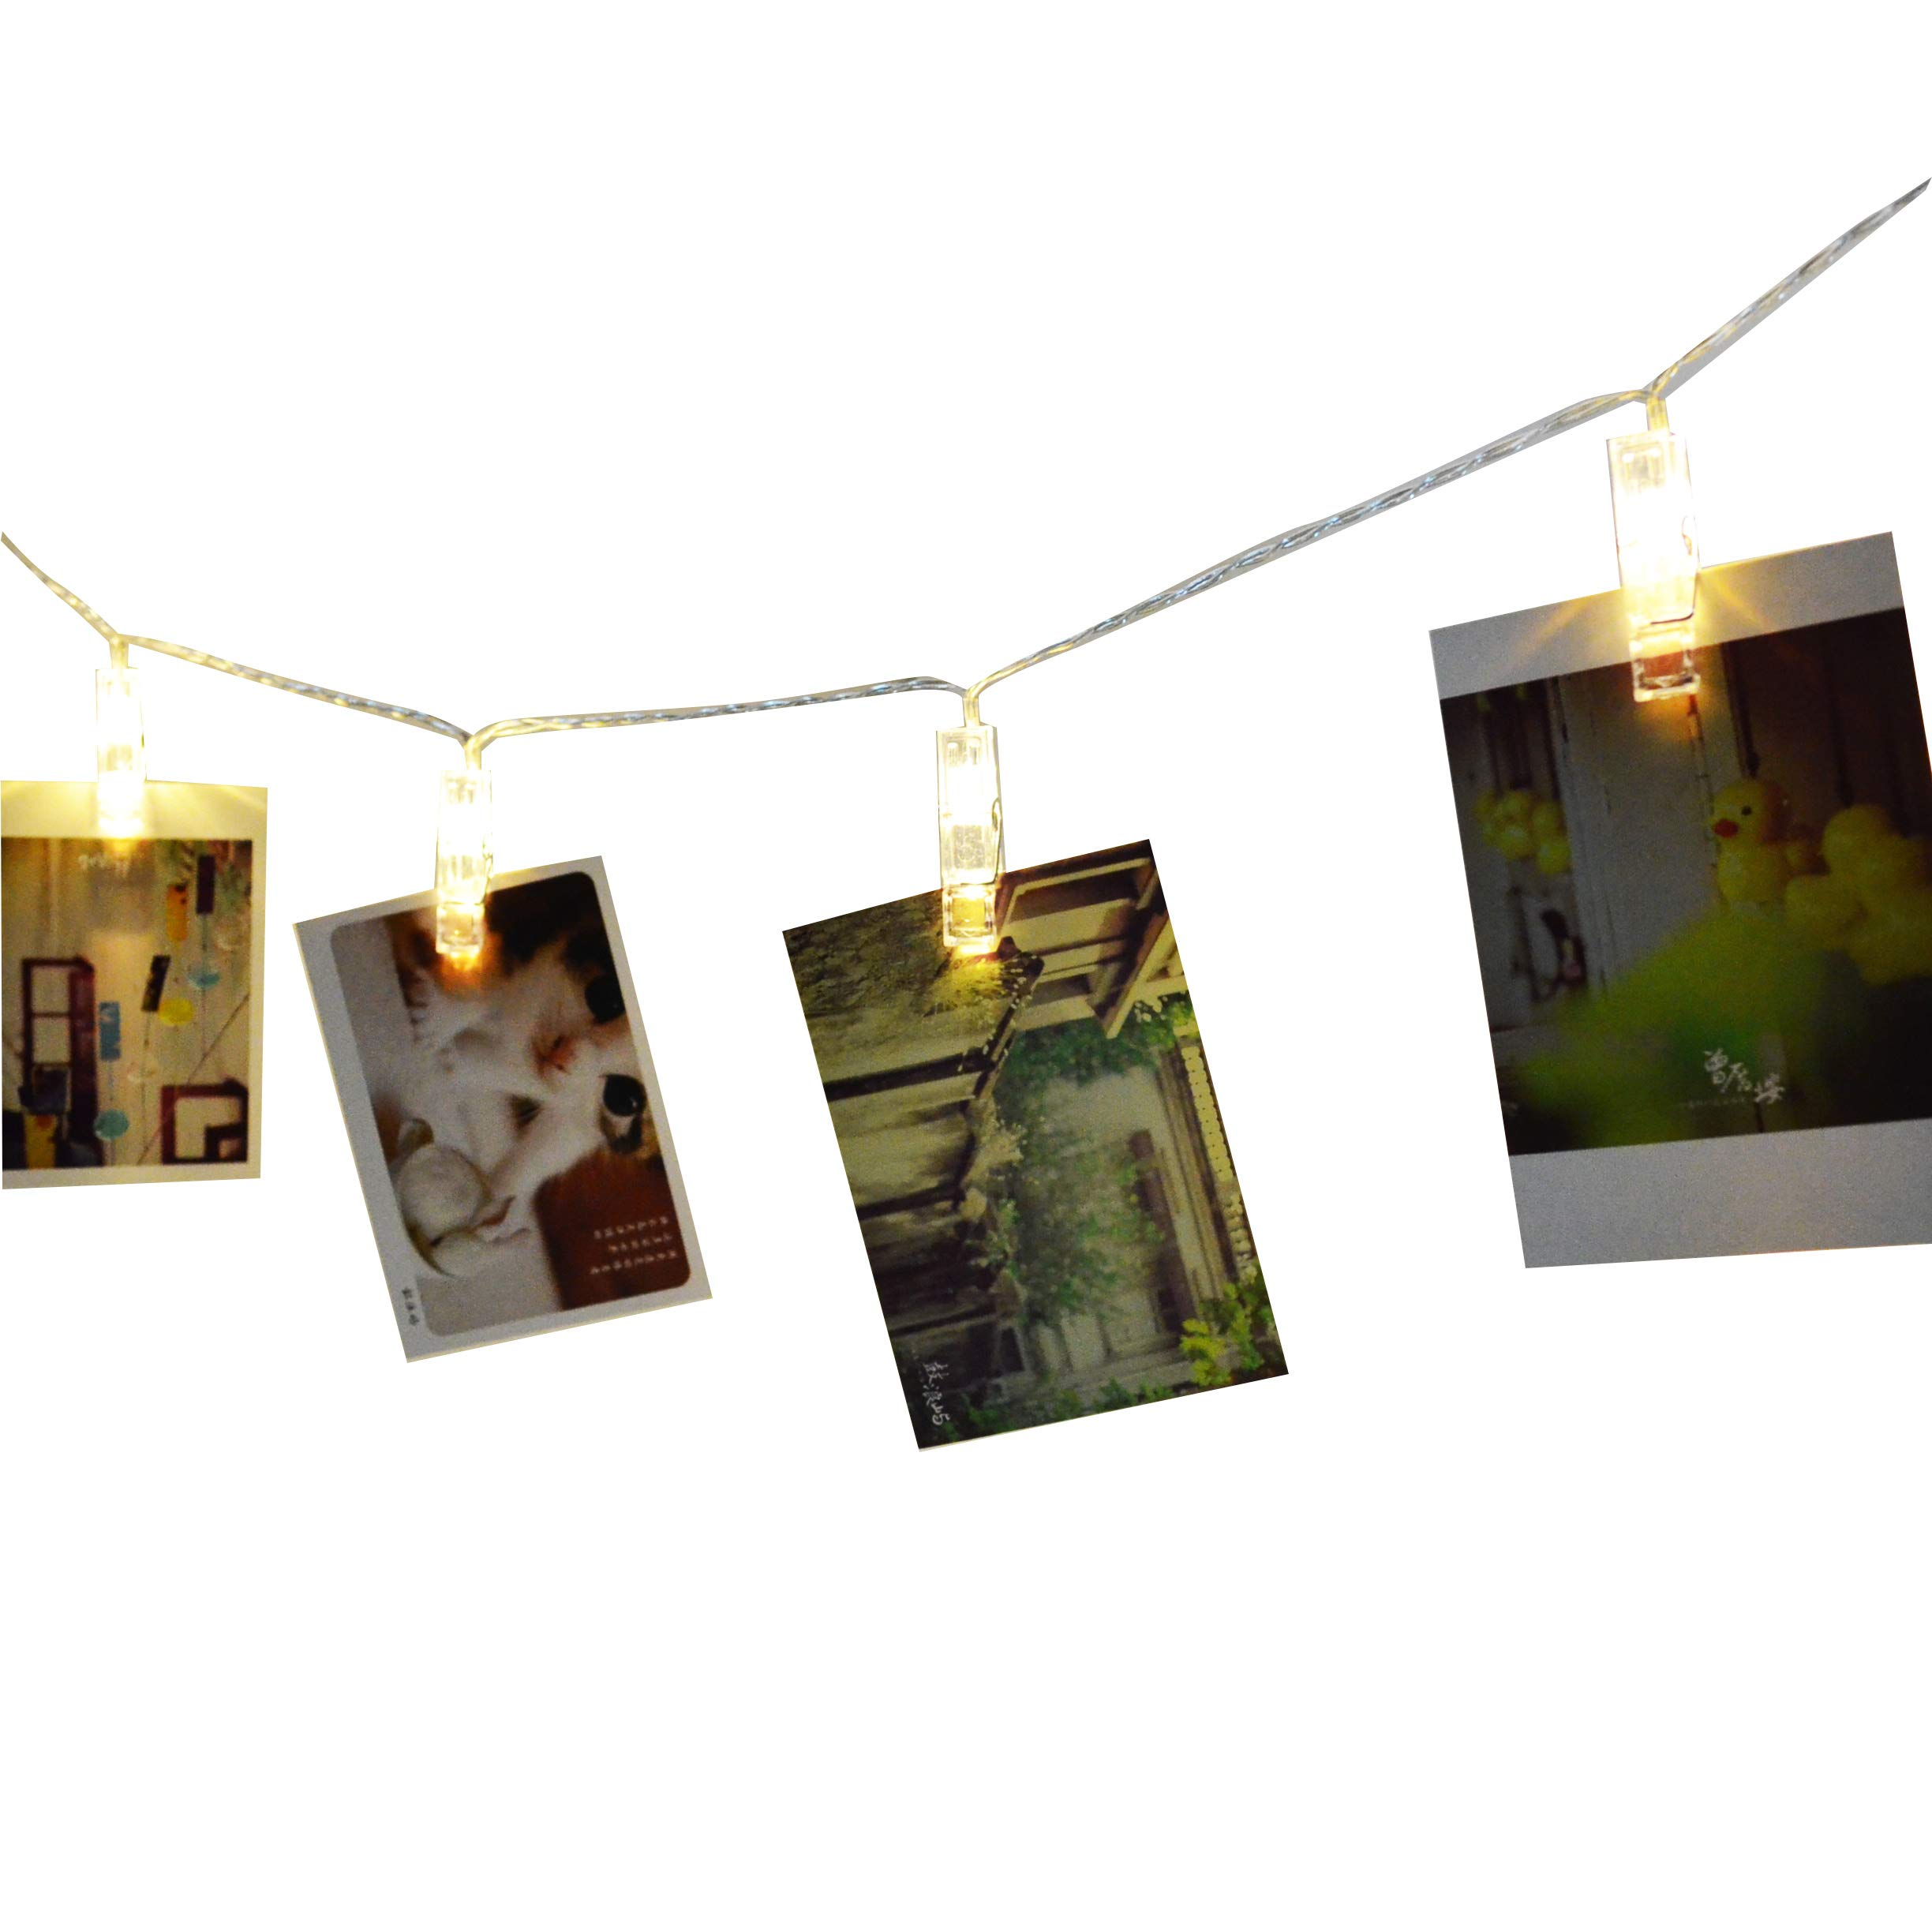 Alyattes Photo Clips String Lights Christmas Lights Starry Light Wall Decoration Light for Hanging Photos Paintings Pictures Card and Memos, Battery Powered (40 LED Warm White)